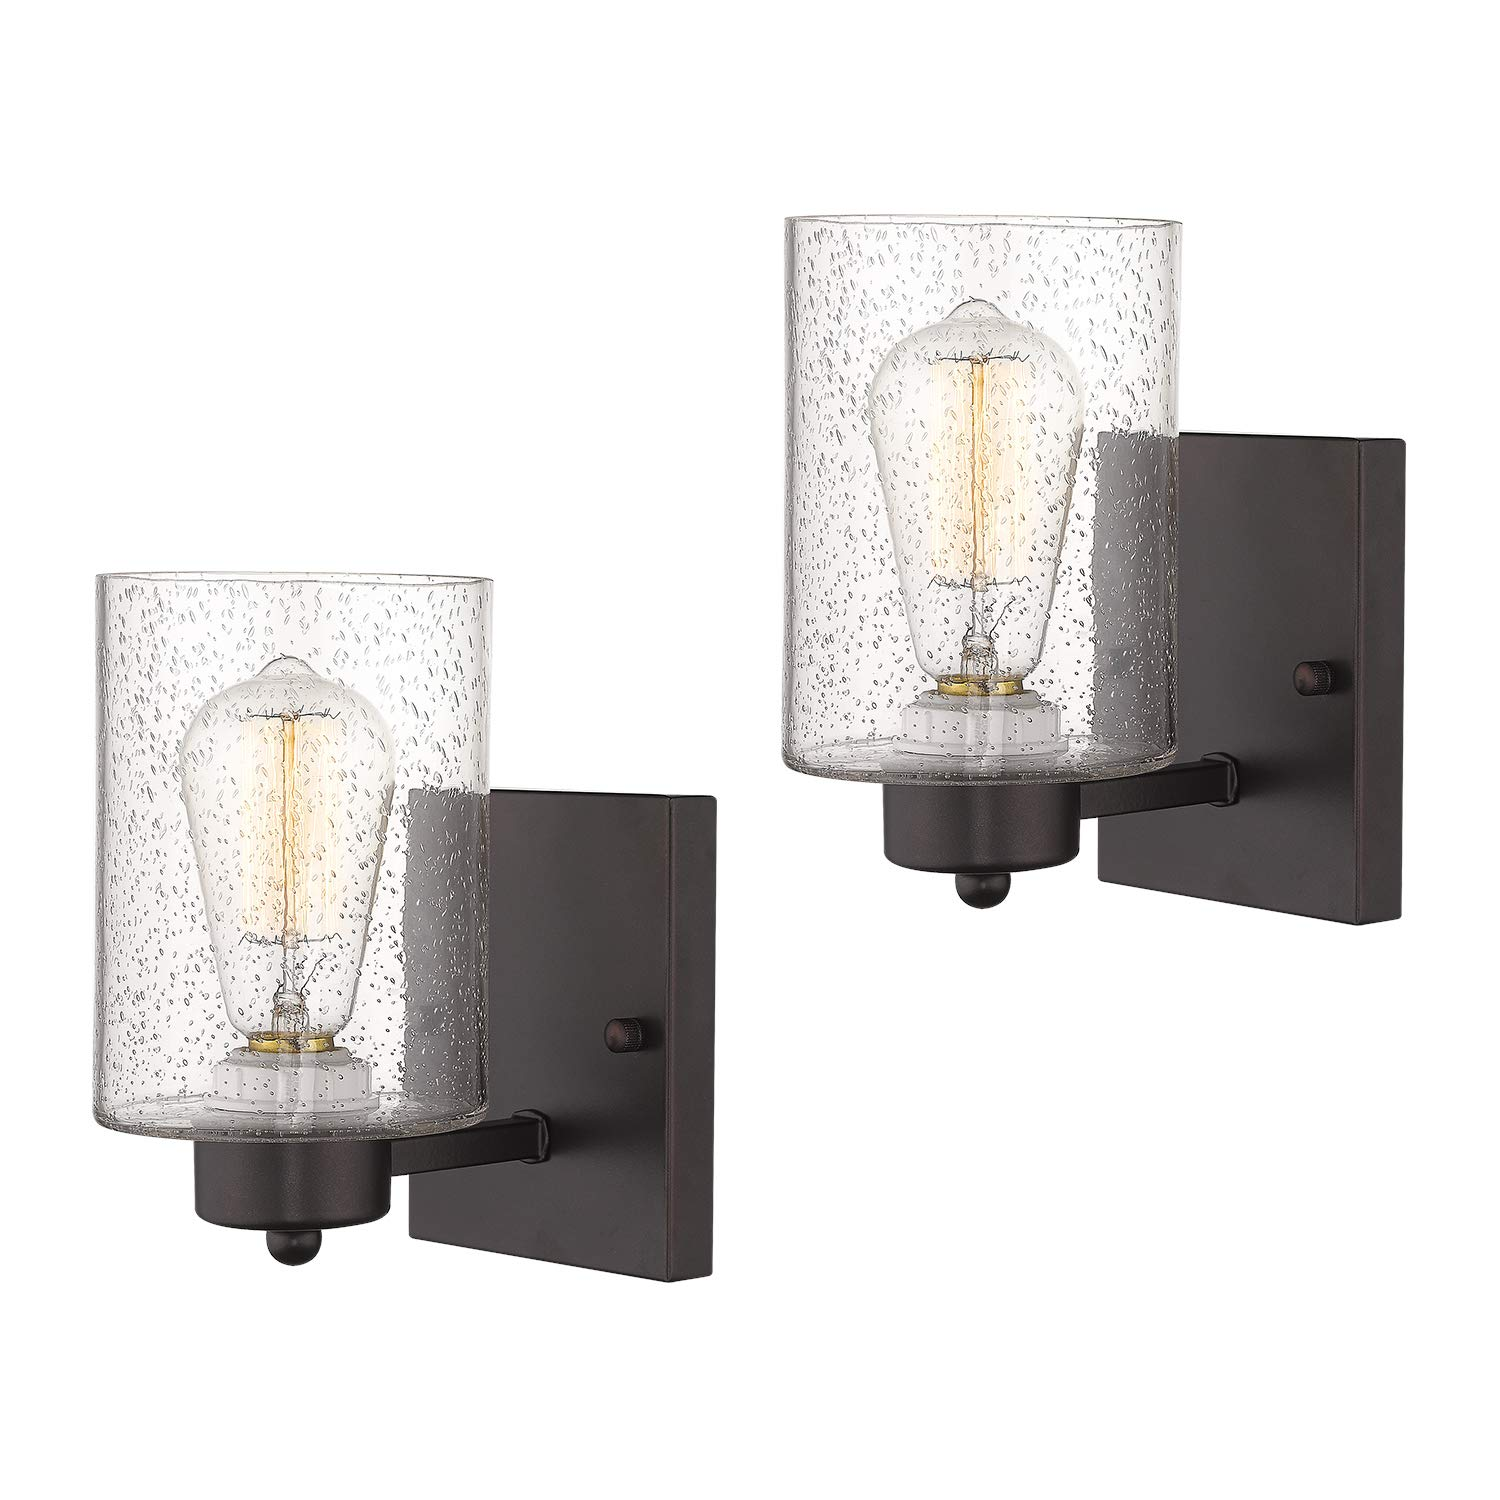 2-Pack Wall Sconces, Beionxii Vintage Bathroom Wall Mount Vanity Light 4.7''W x 8.5''H, Oil Rubbed Bronze Finish with Clear Seeded Glass